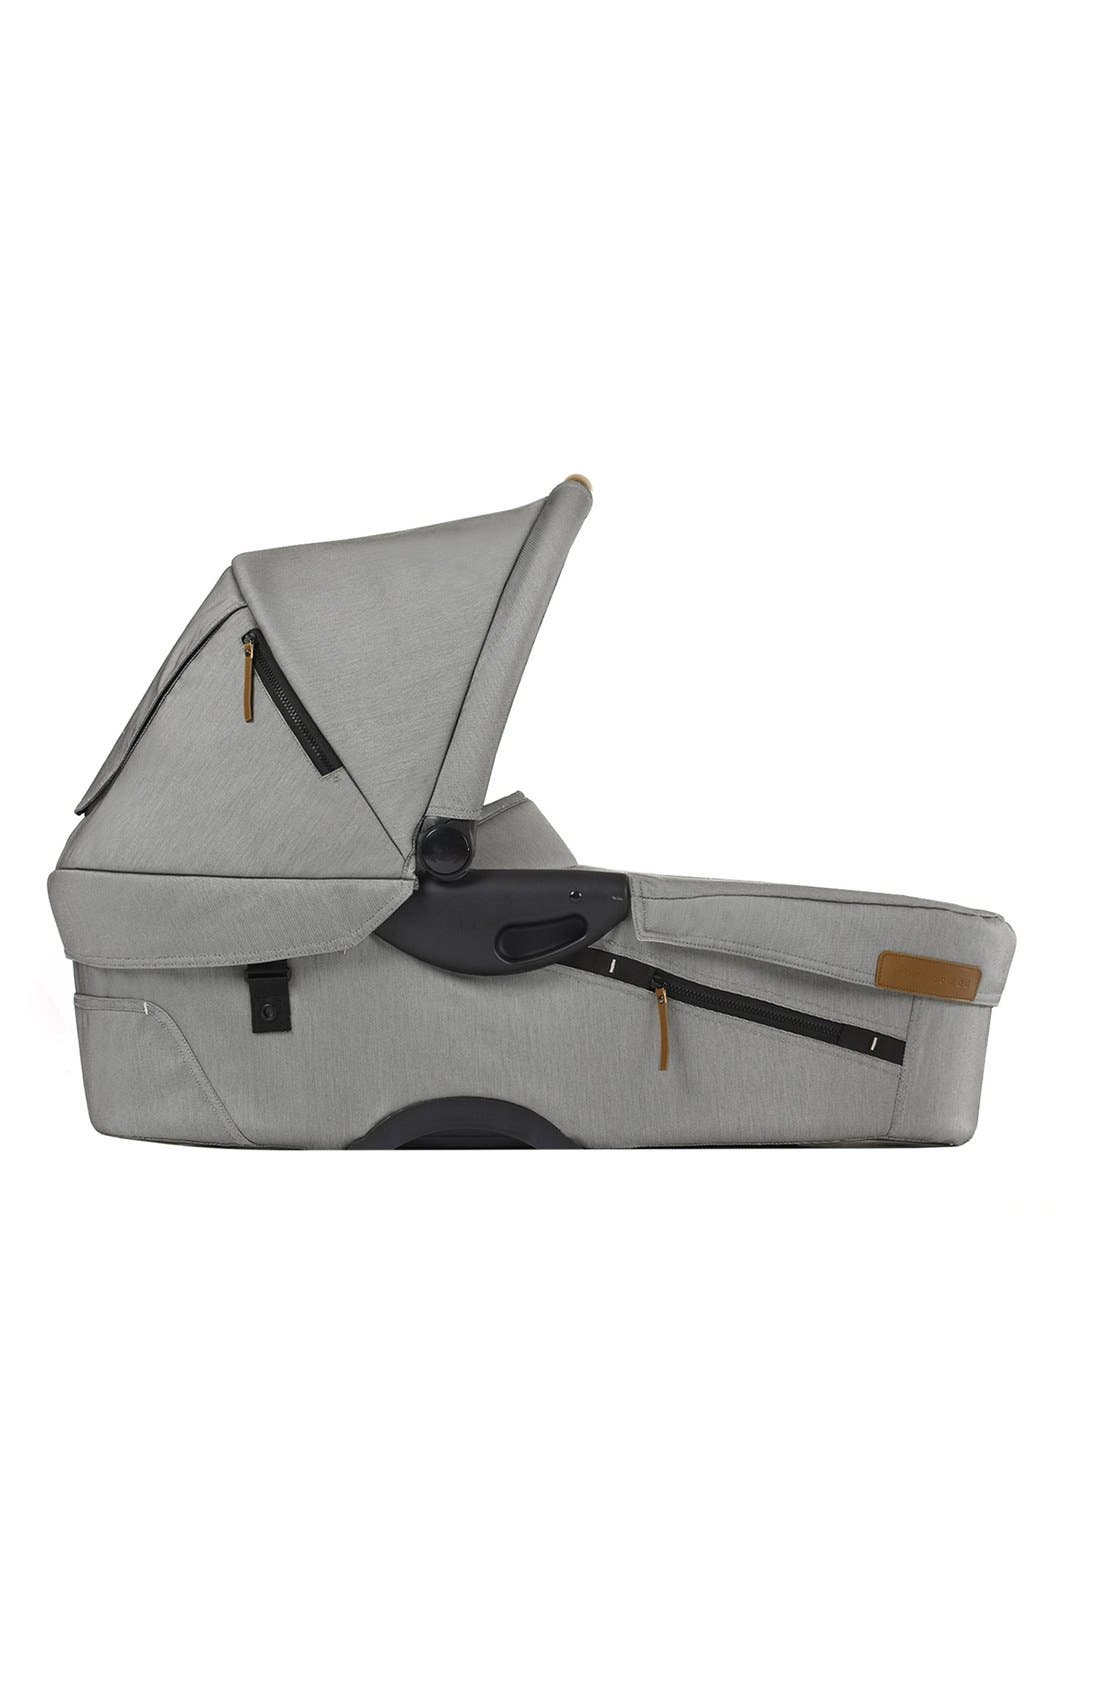 'Evo - Urban Nomad' Bassinet,                             Main thumbnail 1, color,                             020